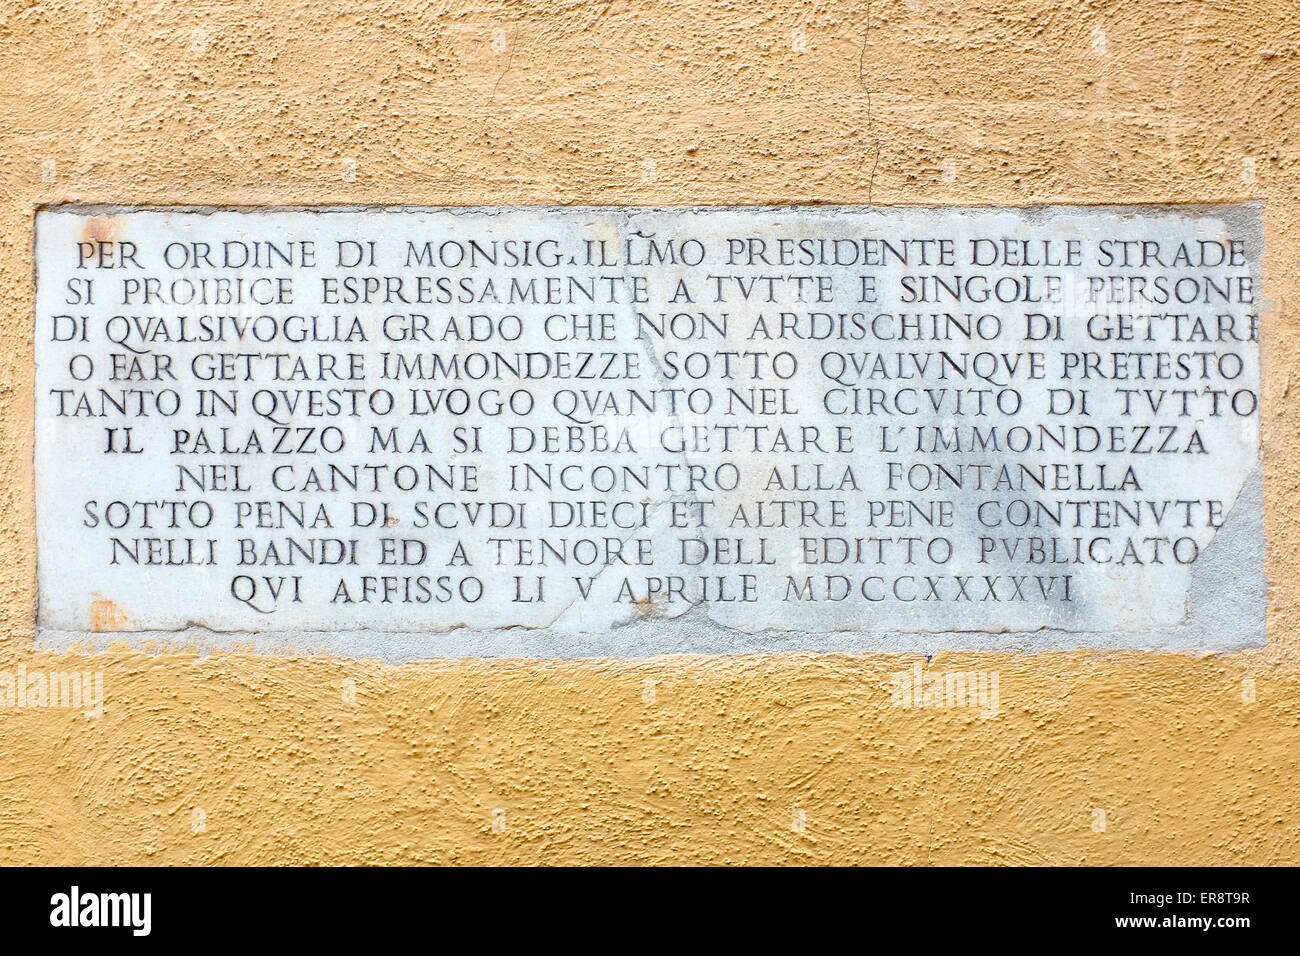 Plaque banning the dumping of garbage in public places, 1746 Rome Italy - Stock Image